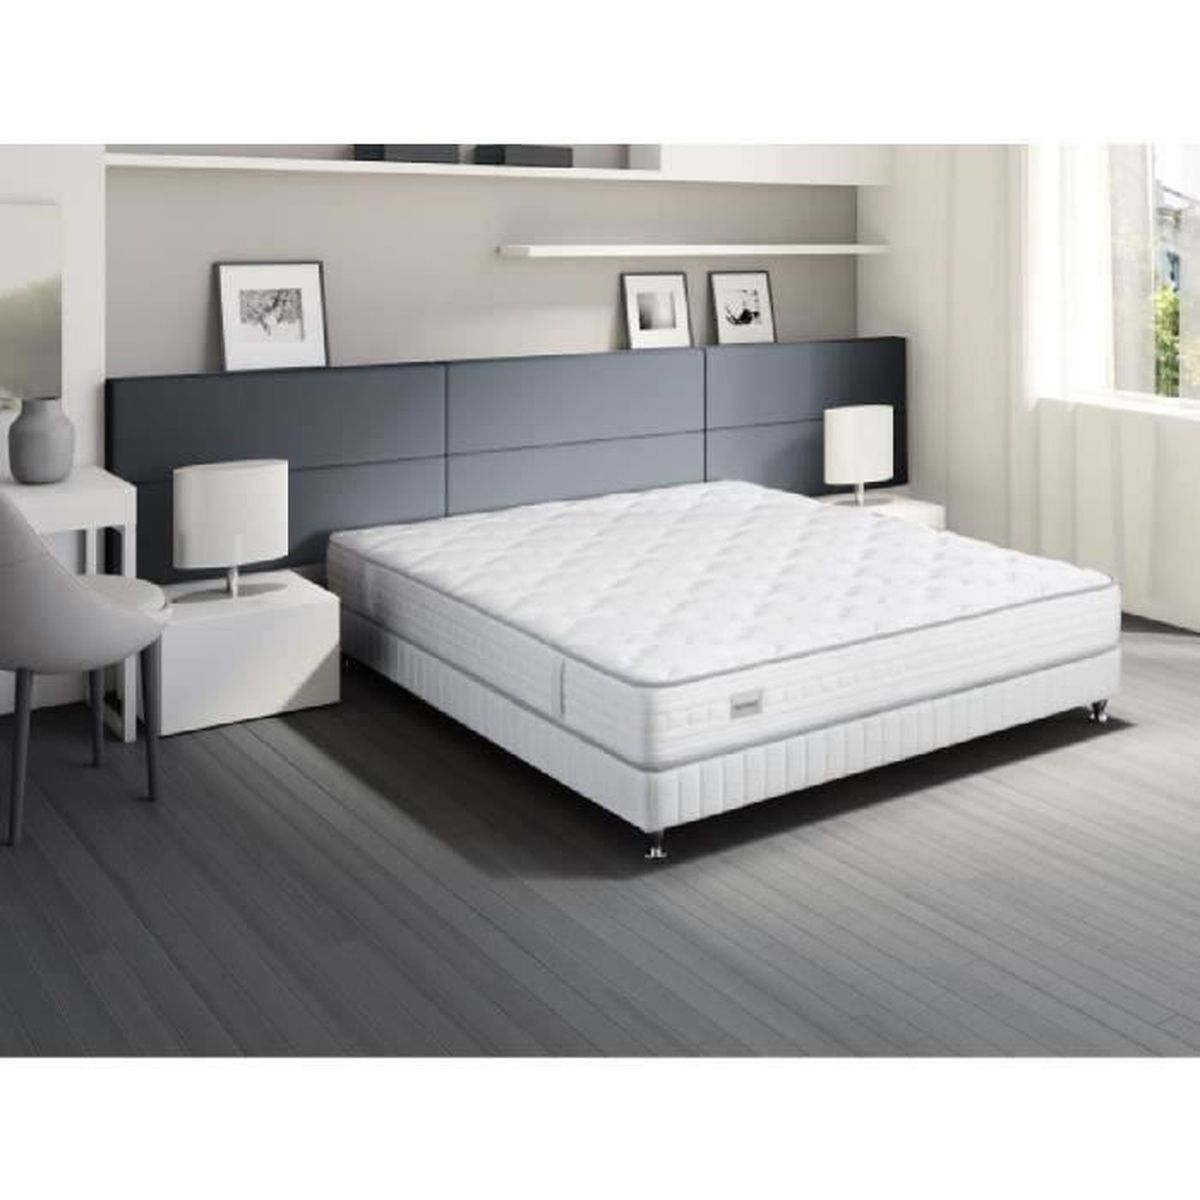 simmons patio ensemble matelas sommier 160x200cm patio ressorts ferme 65kg m3 s rie. Black Bedroom Furniture Sets. Home Design Ideas